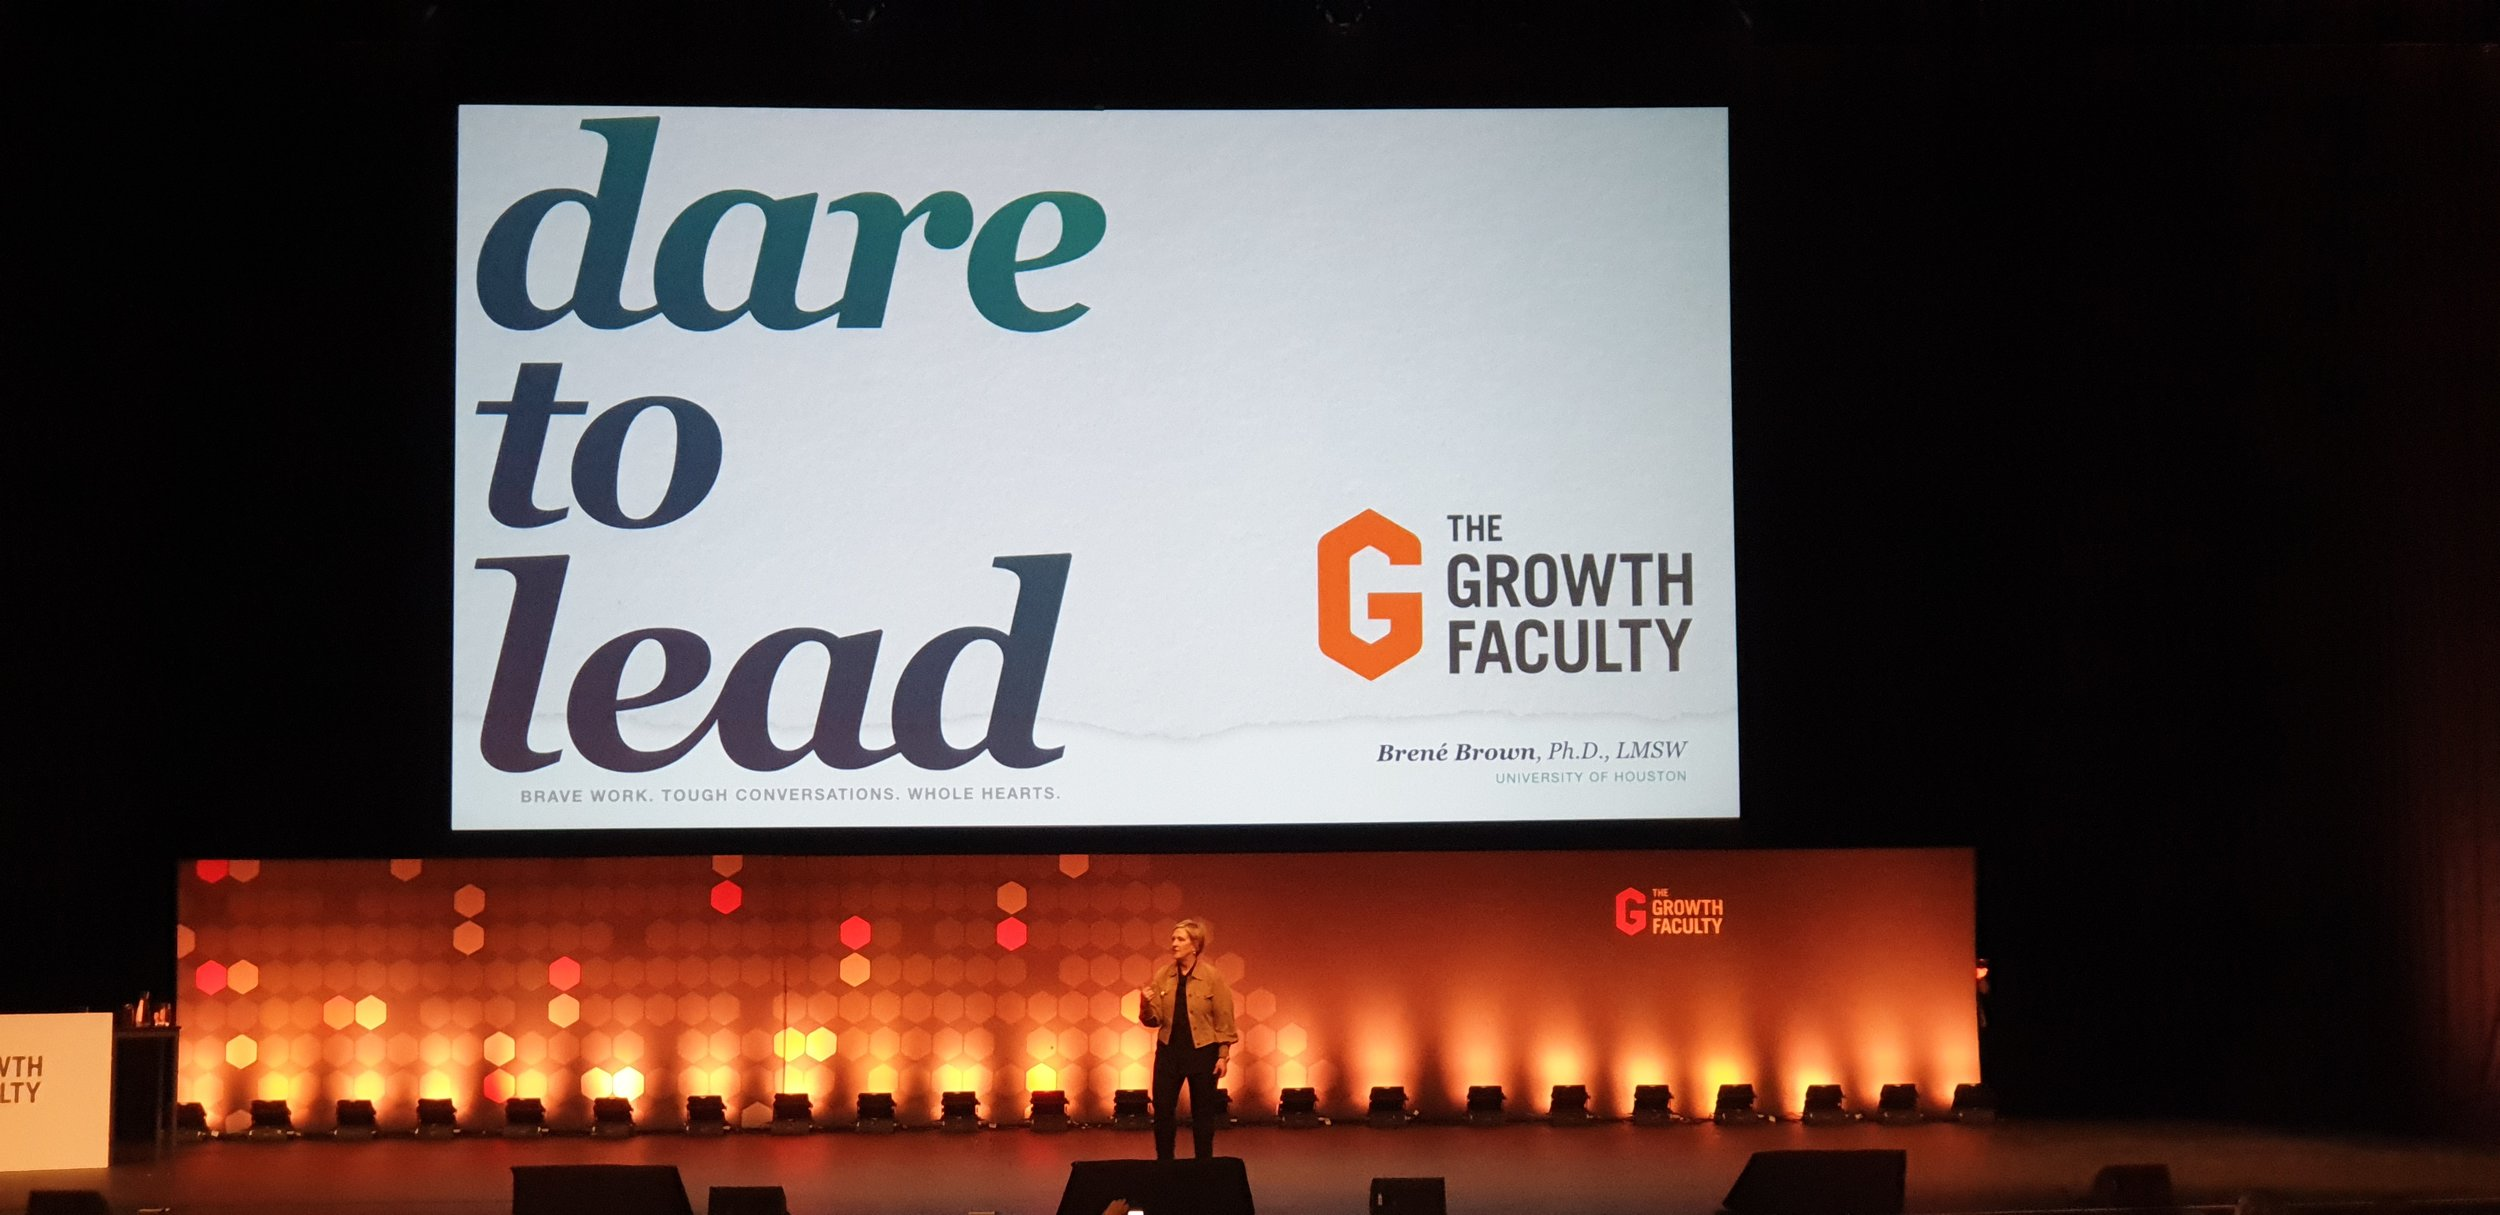 Brene struts her stuff on stage at the DARE TO LEAD workshop in Melbourne on 2nd August 2019